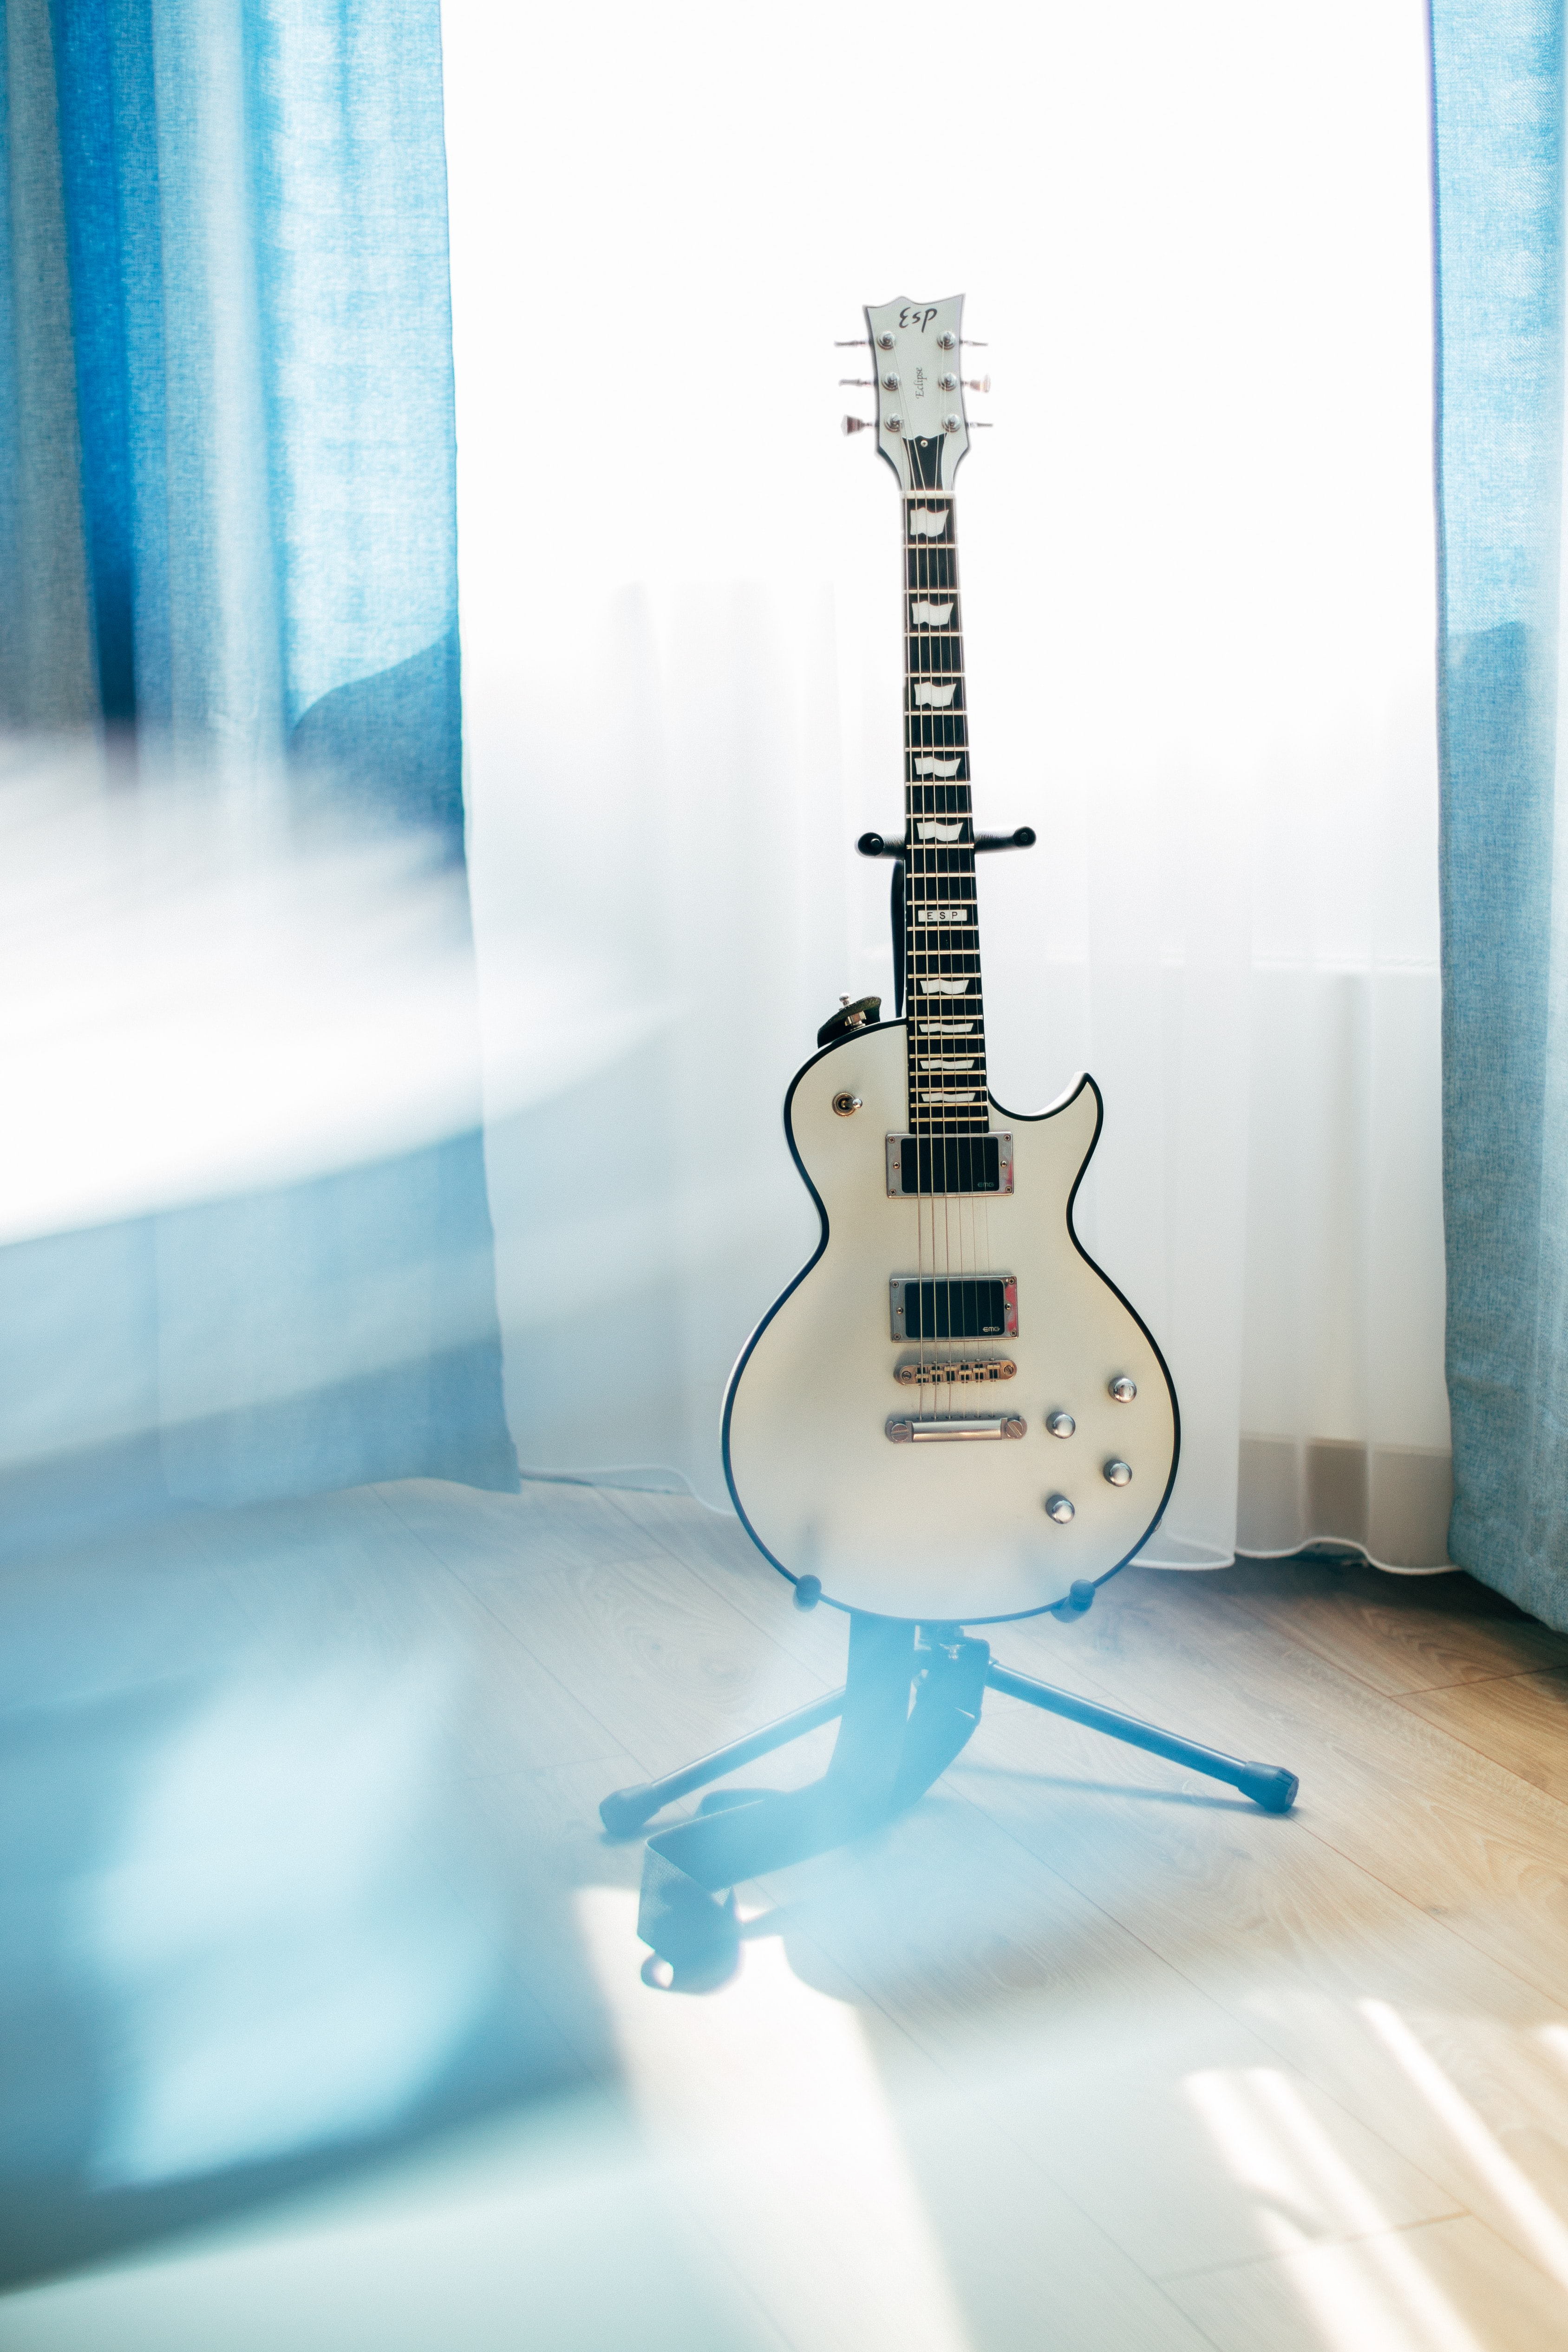 white Les Paul guitar with stand